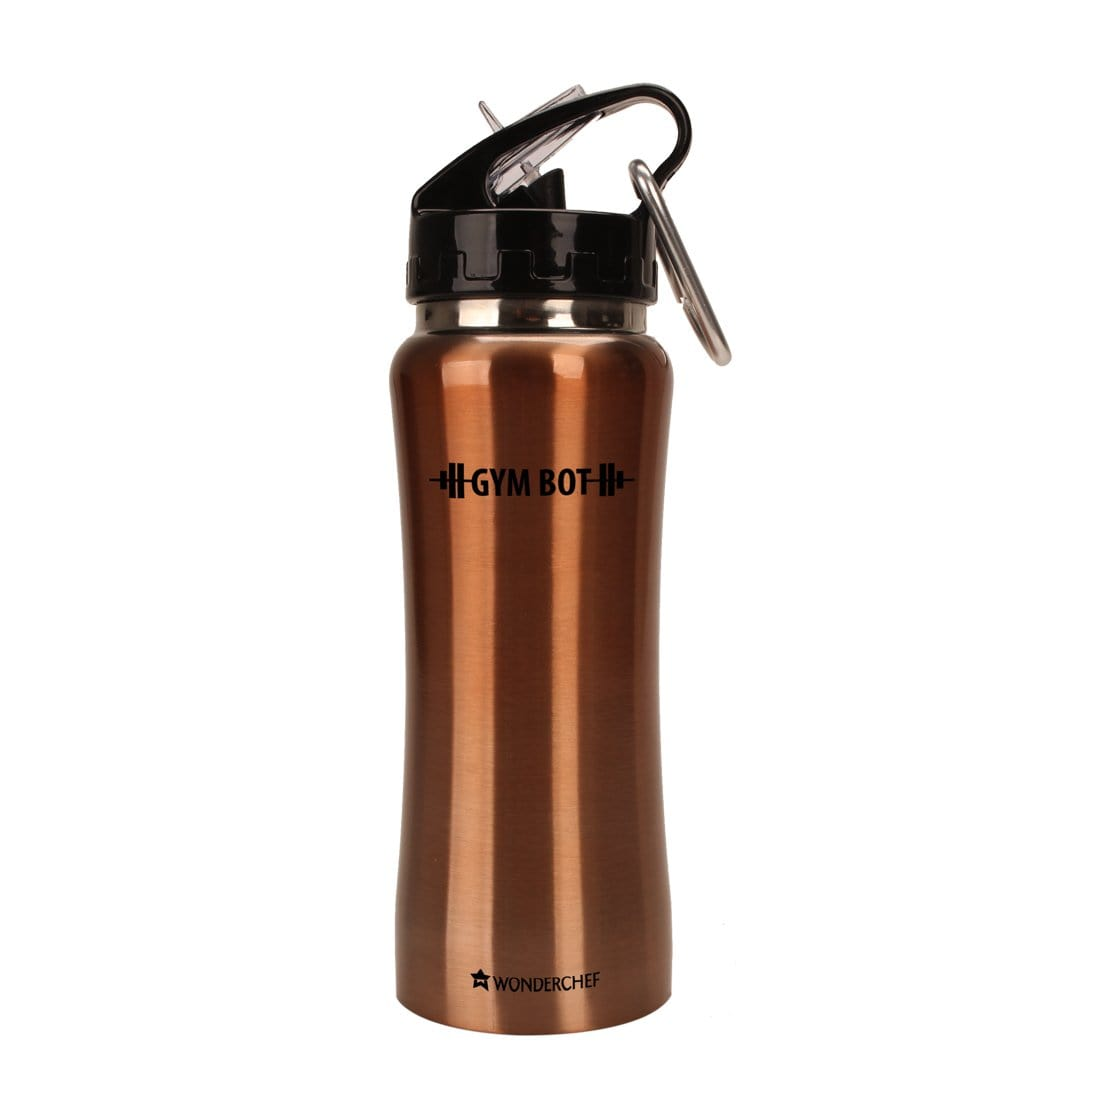 wonderchef-gym-bot-single-wall-bottle_500ml-copper